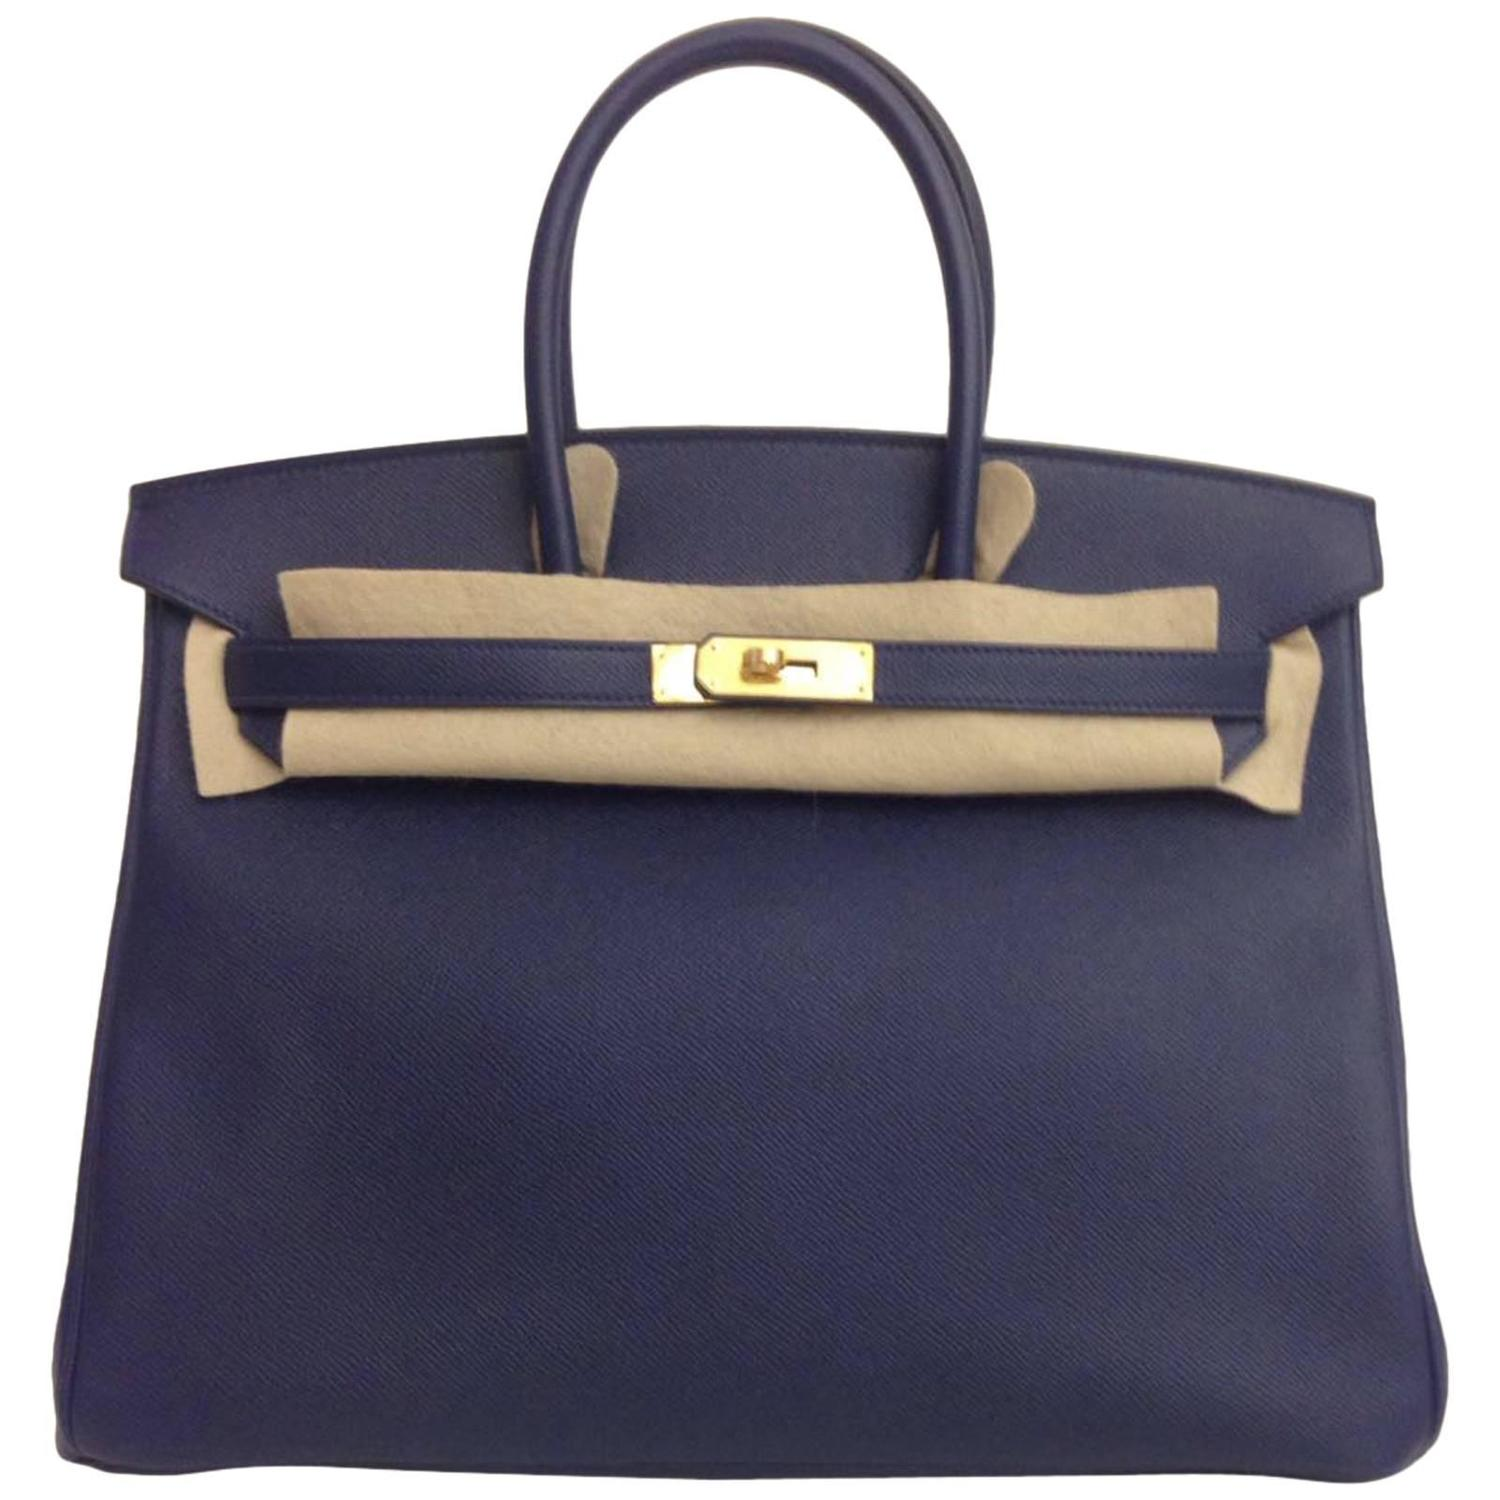 how much does a hermes birkin bag cost - hermes new navy bleu saphir clemence leather 35cm kelly bag phw ...